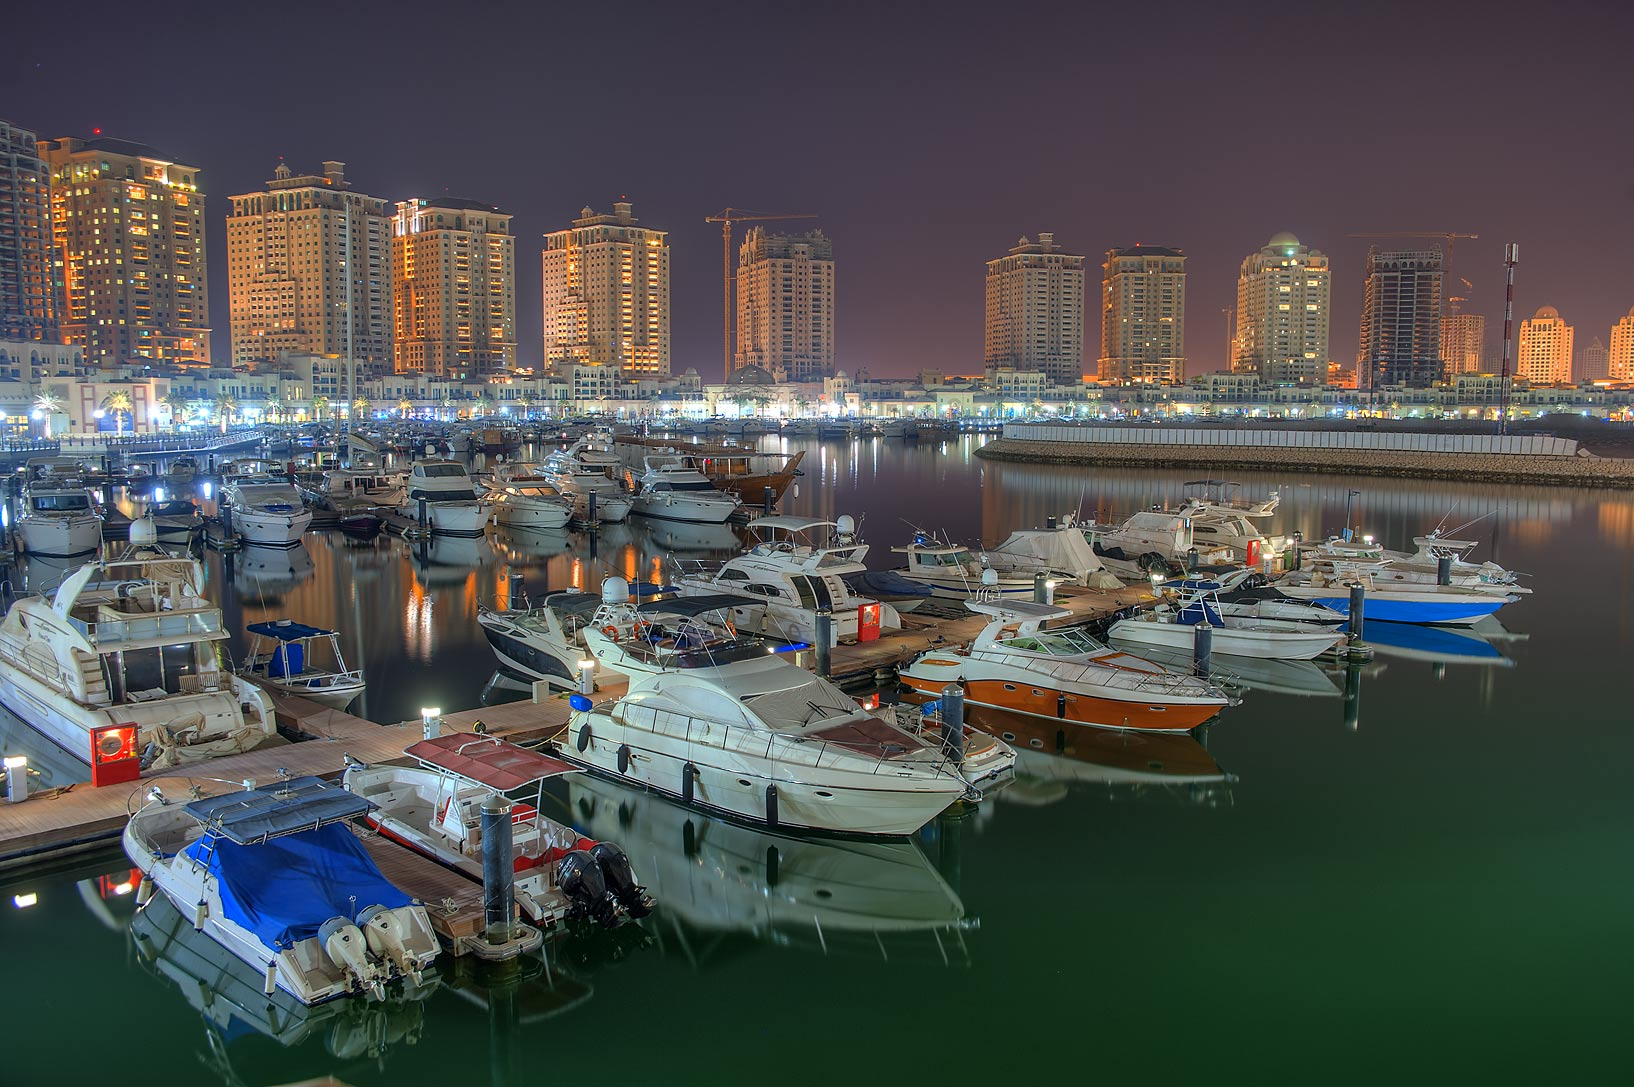 Marina of Porto Arabia in Pearl Qatar Development. Doha, Qatar